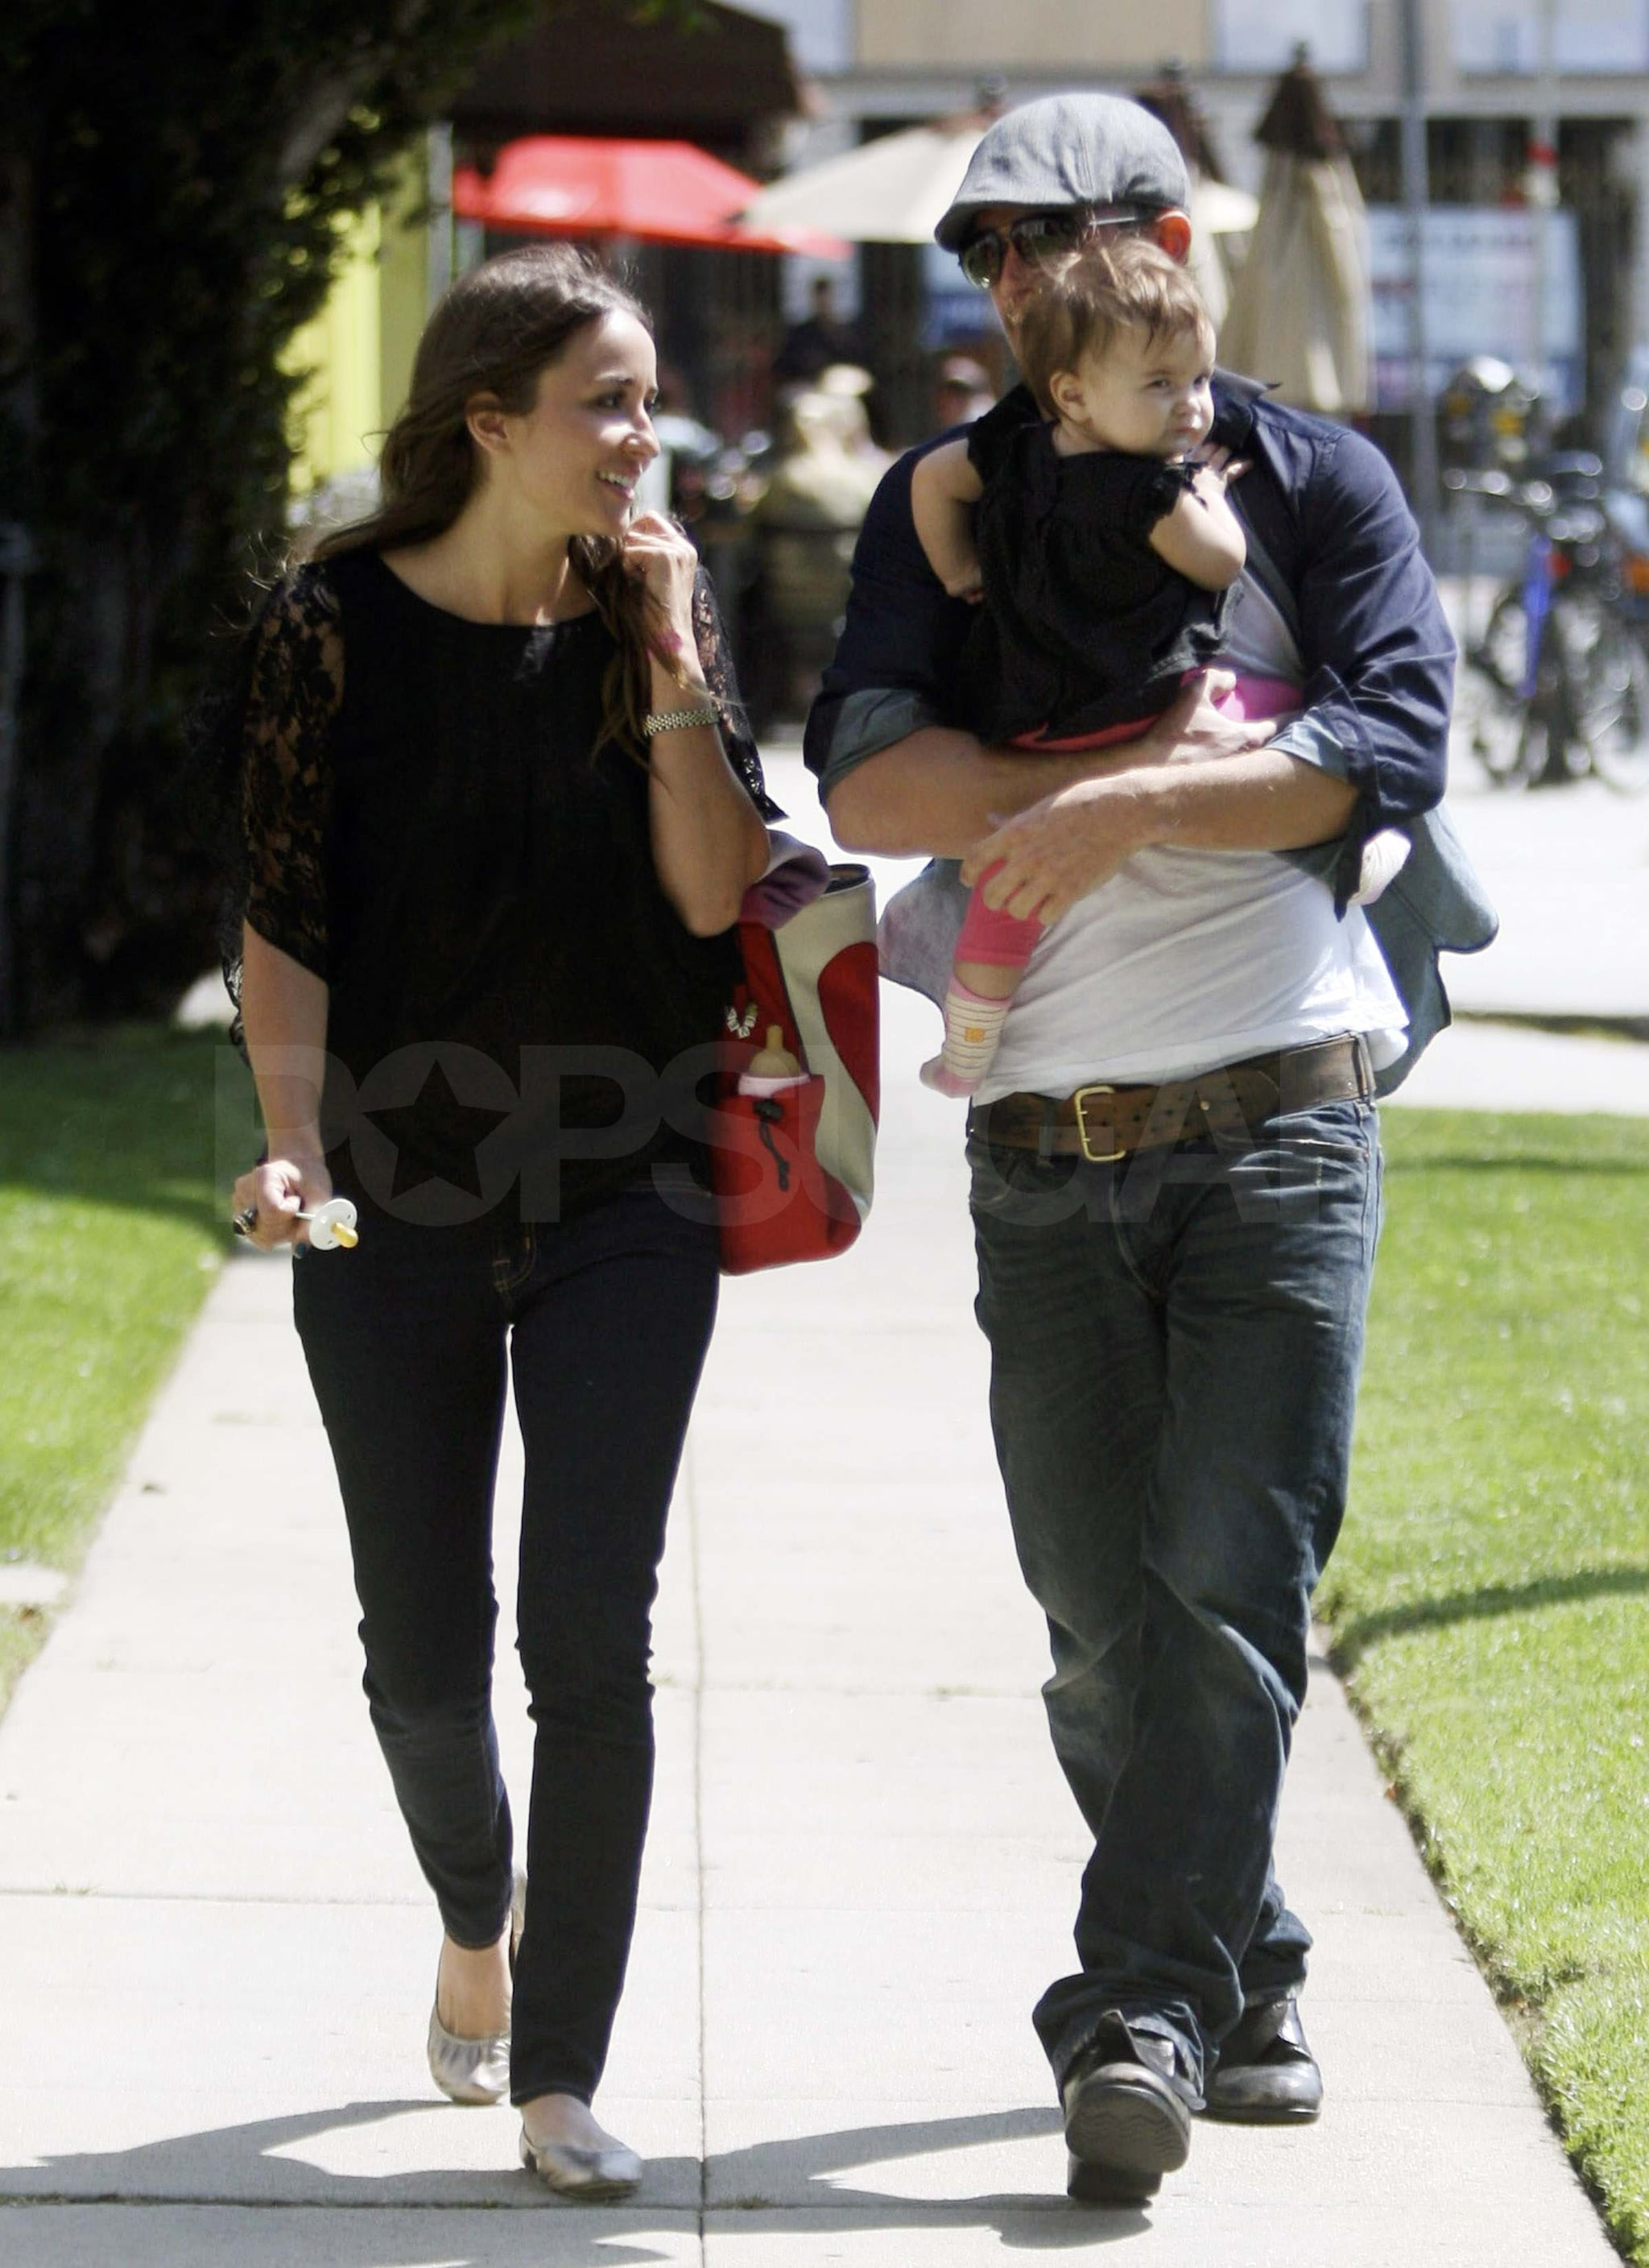 Pictures of Cam and baby